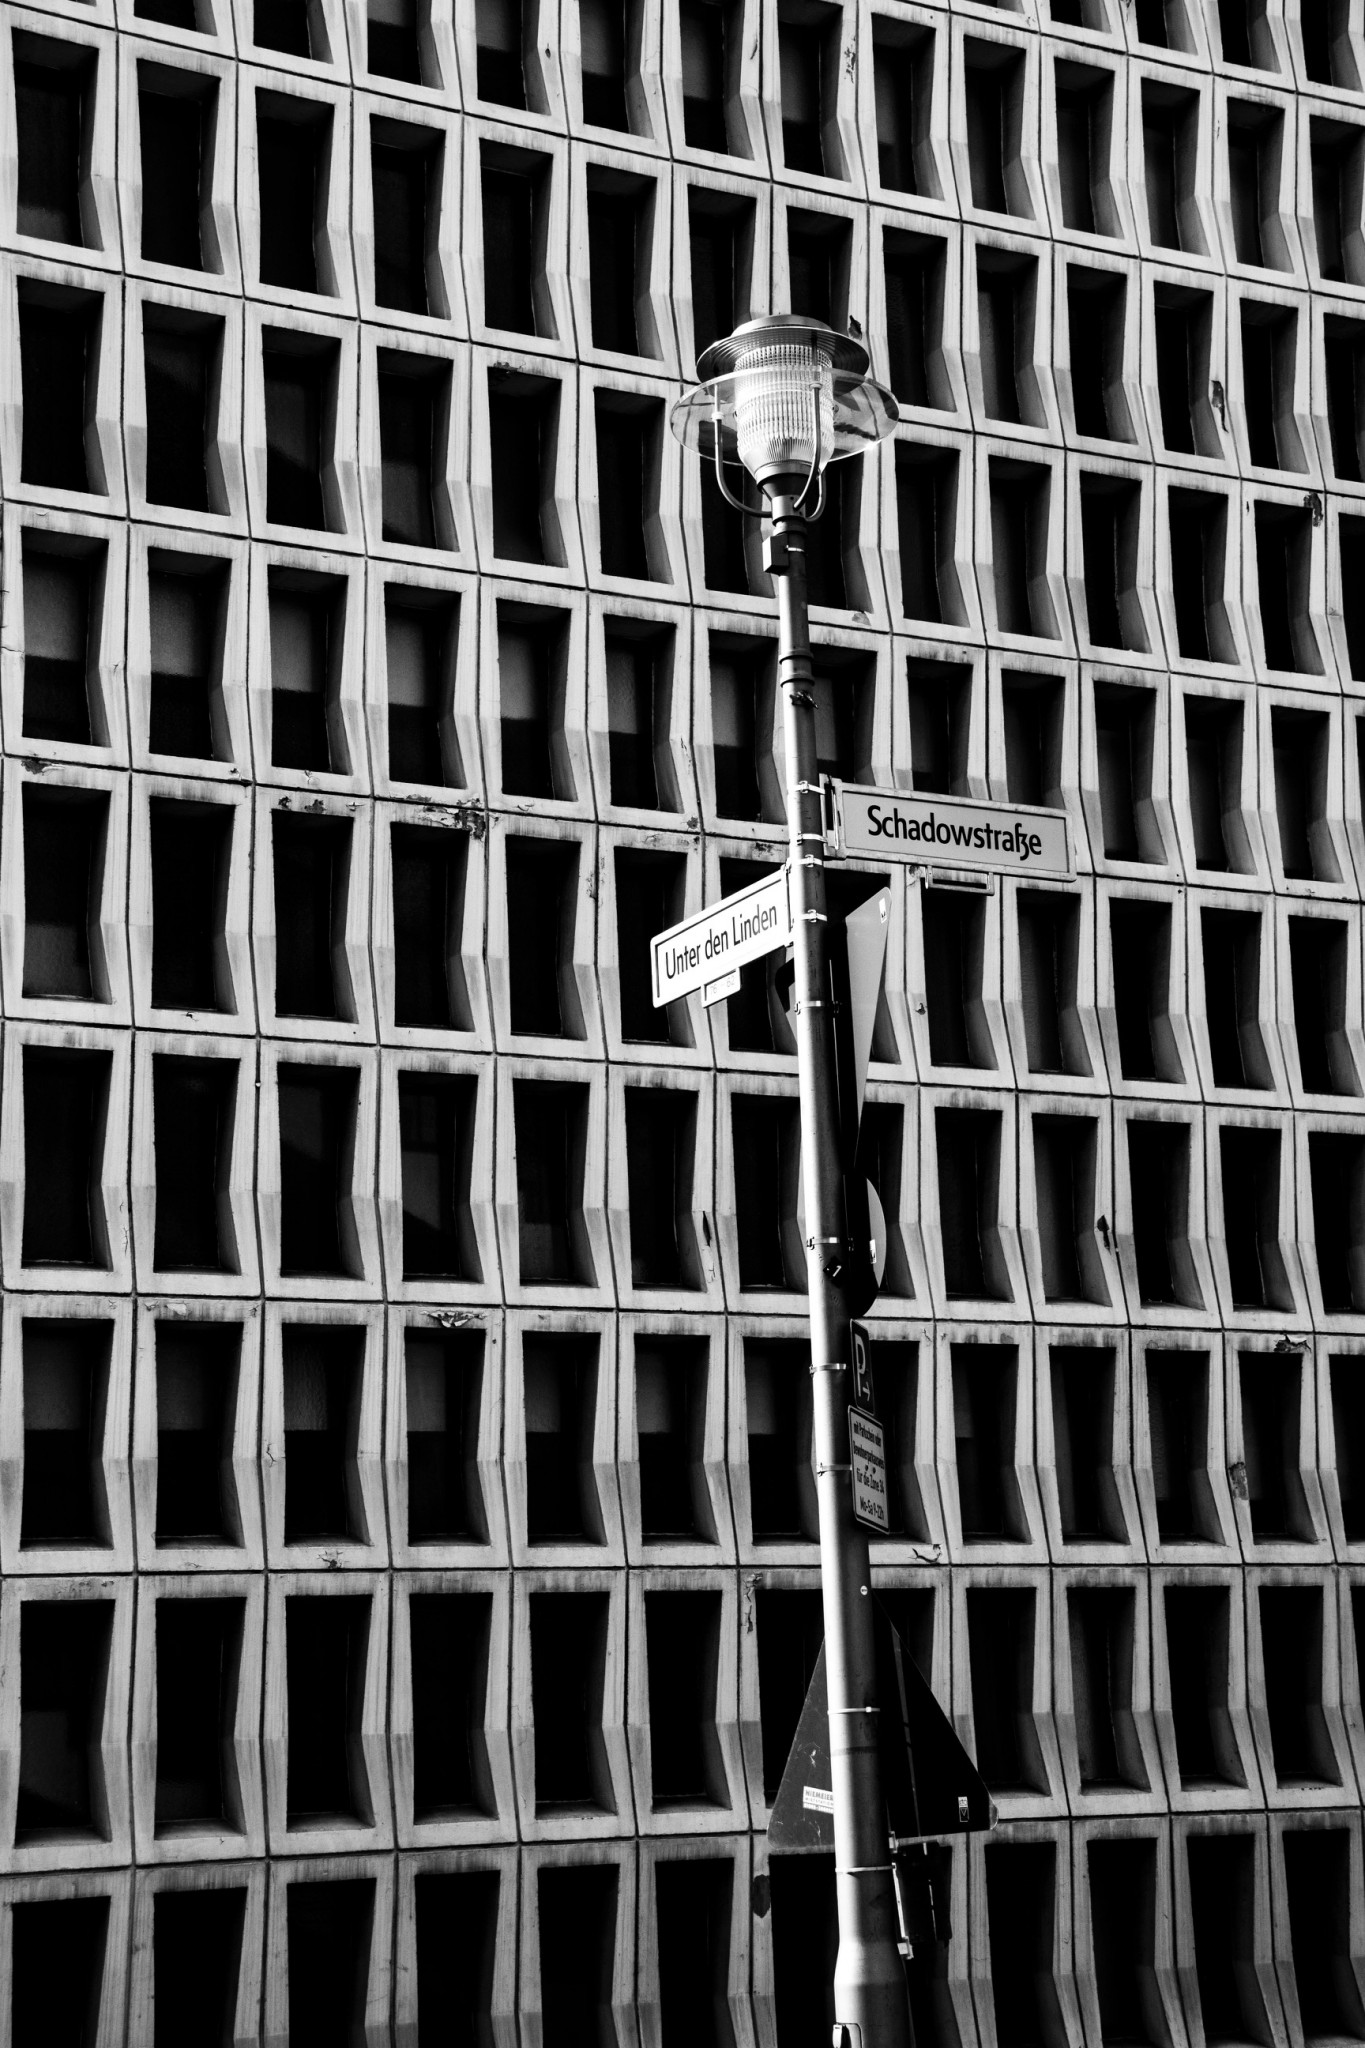 Die Berlinerin - Berlin - Allemagne - Germany - Veronique Thomazo Photography - black and white photography - Nice France - French photographer -